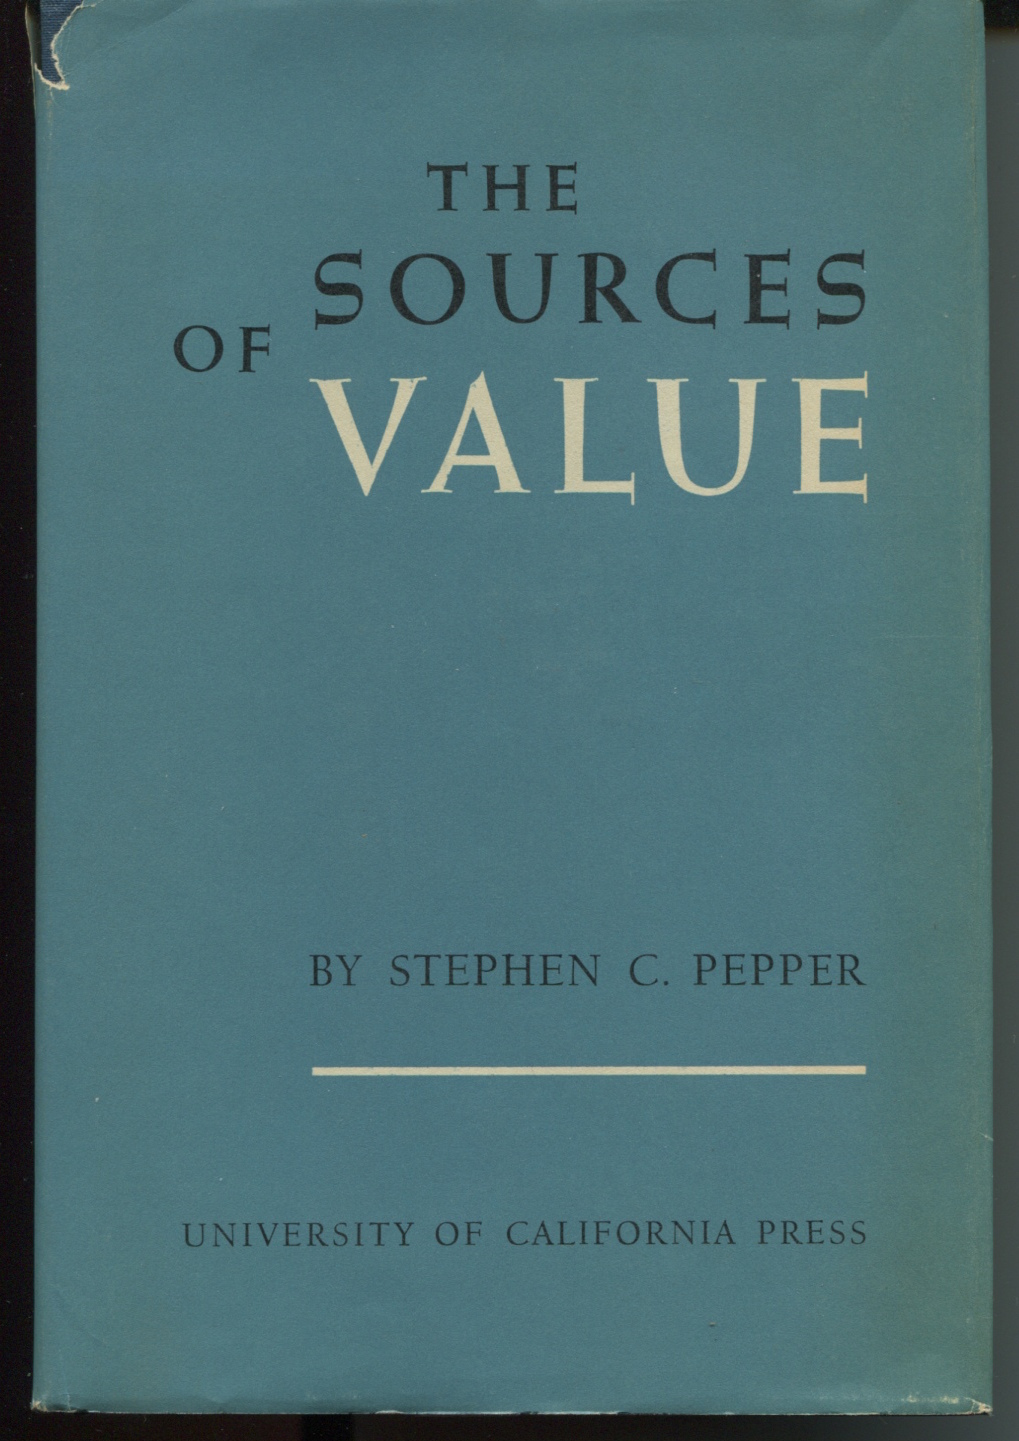 The Sources of Value.